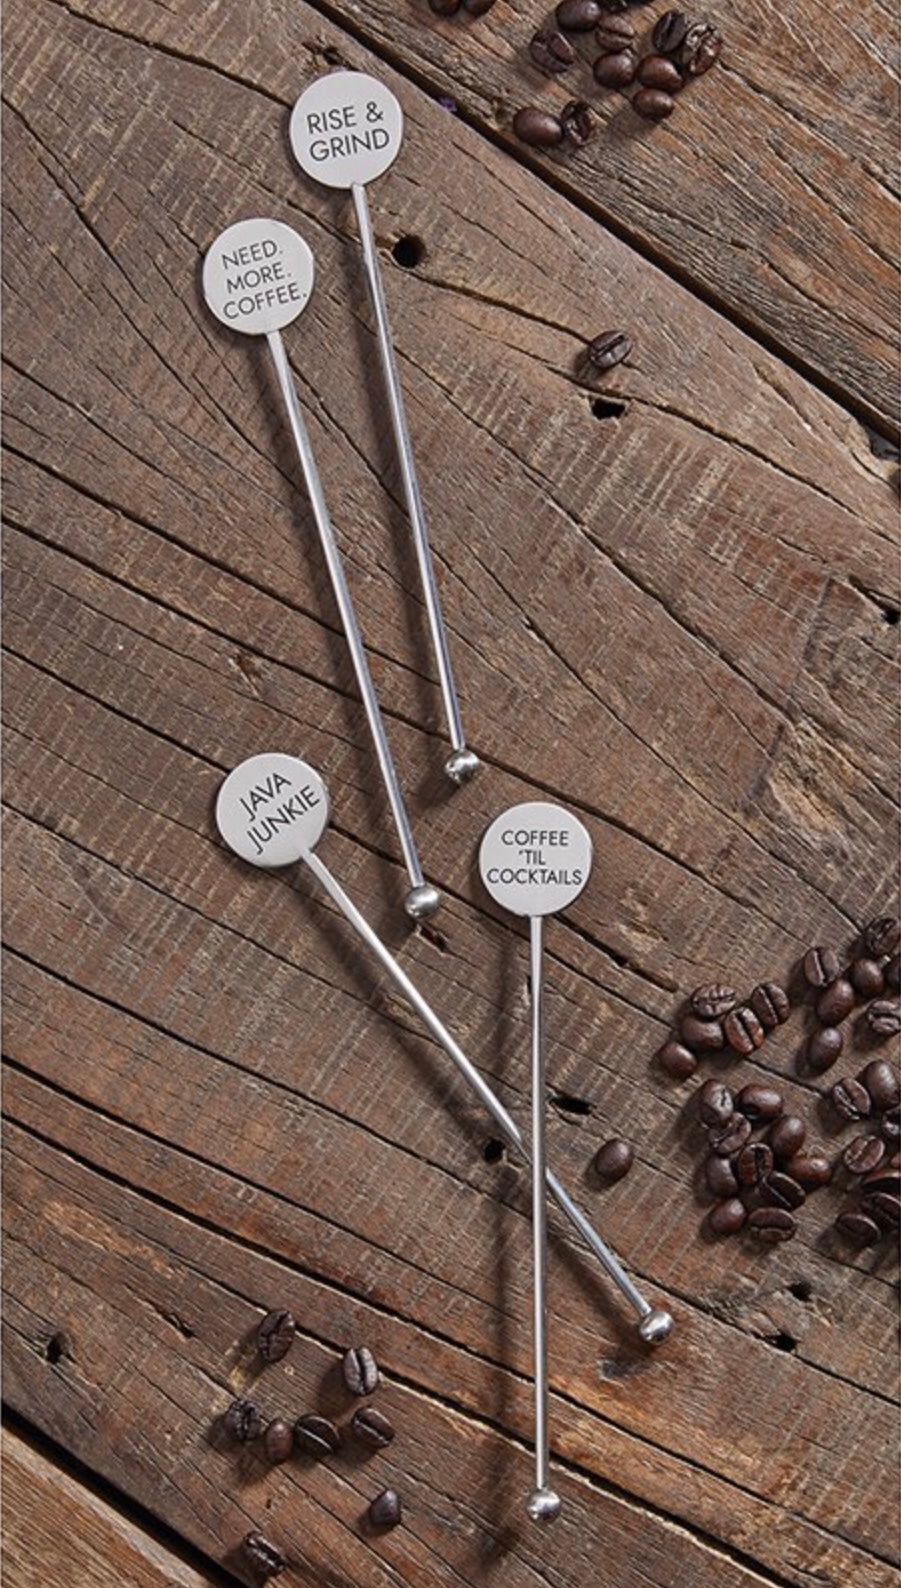 Stainless Steel Coffee Stir Sticks